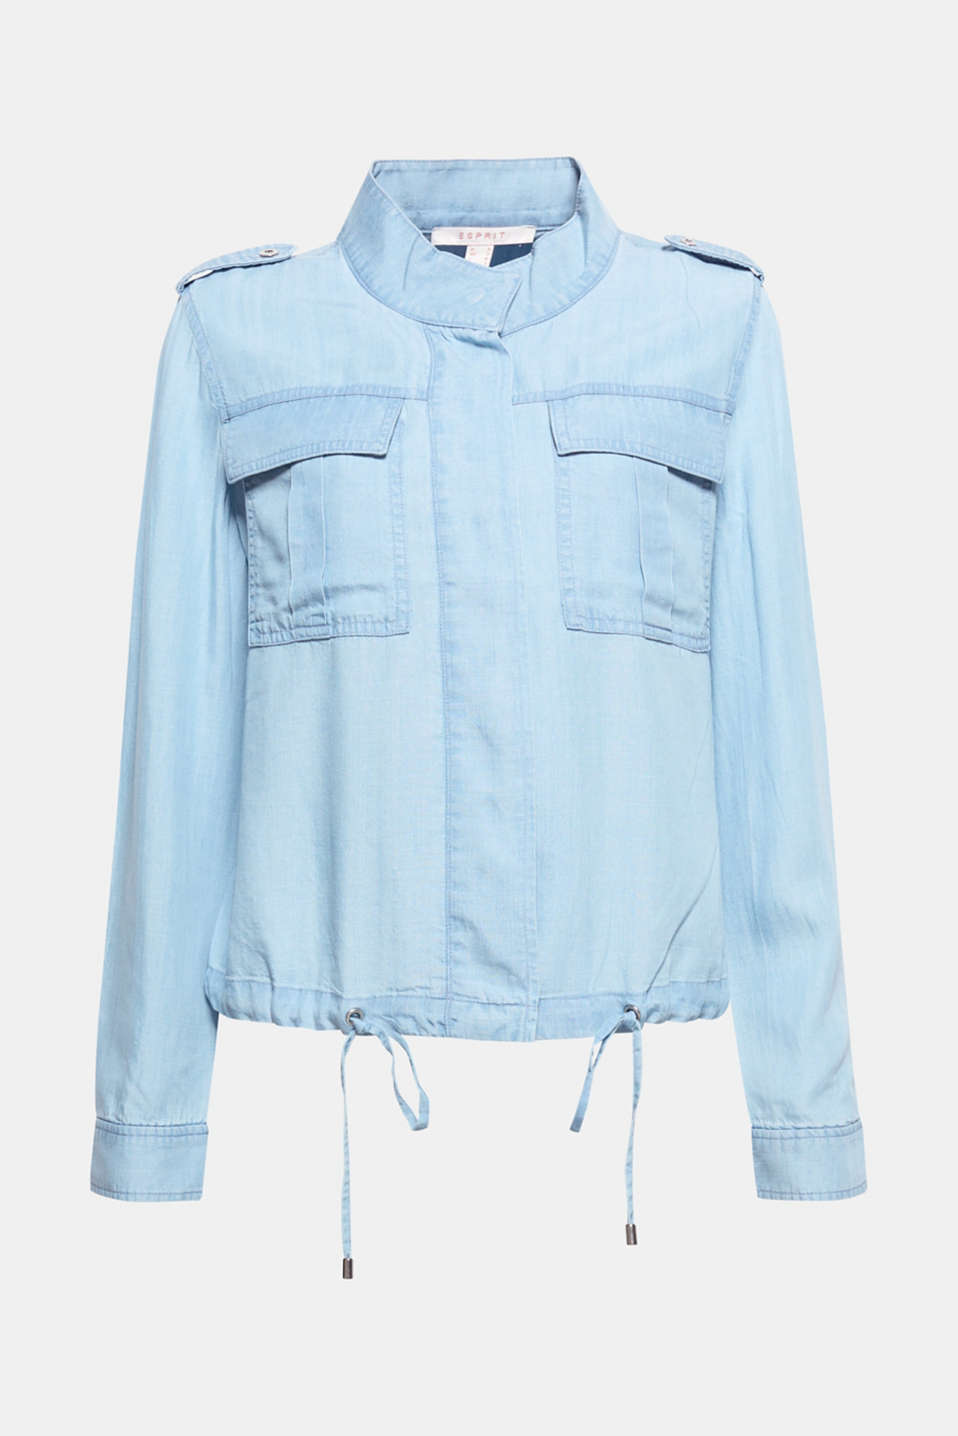 This jacket with trend details is a casual spring style thanks to its lightweight fabric in a pale denim look!